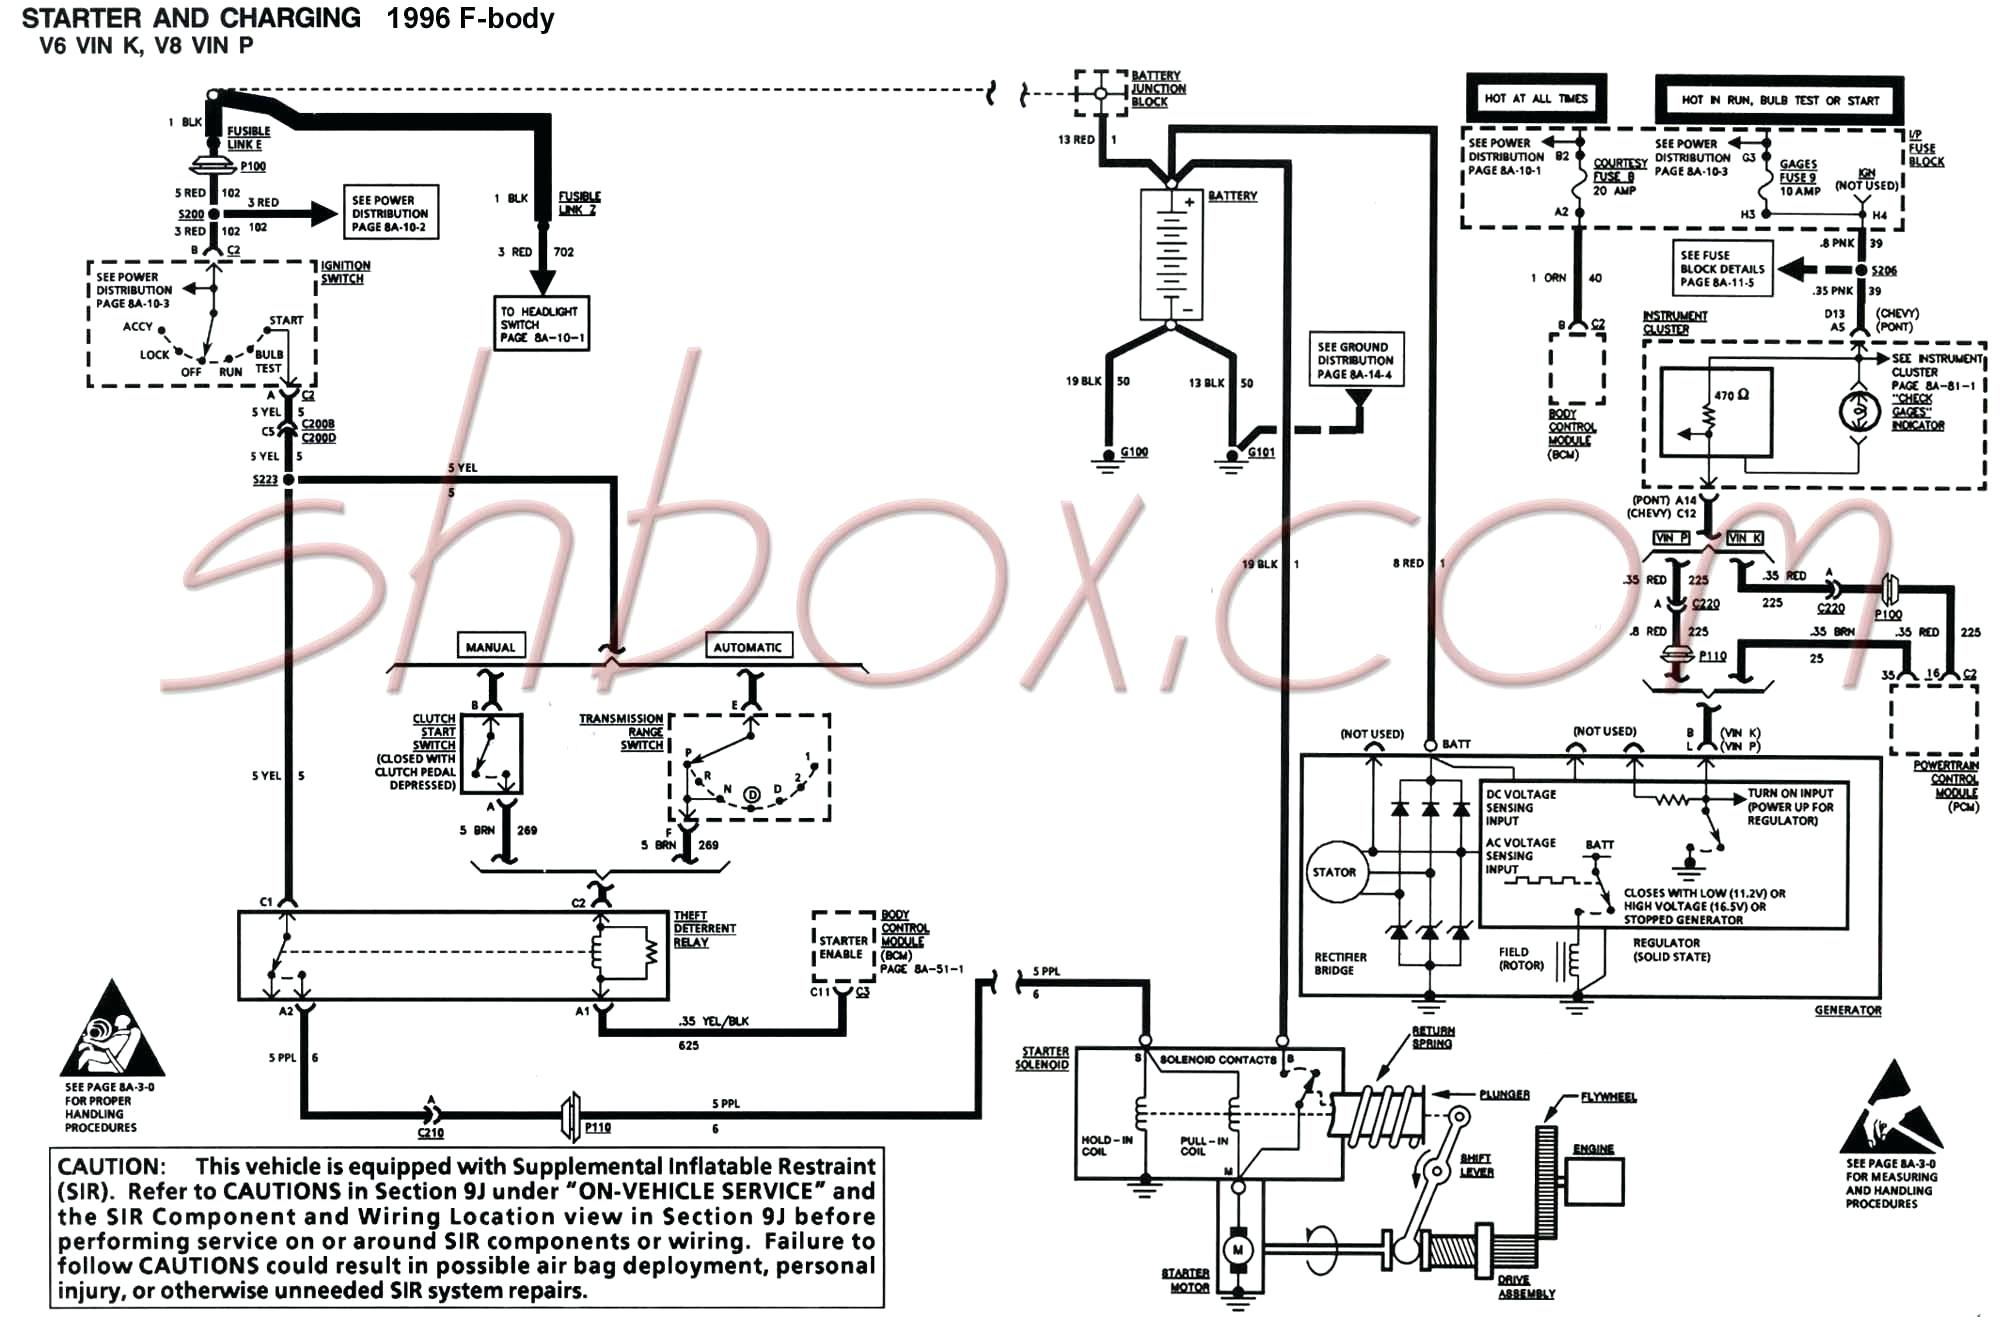 2007 Jeep Commander Trailer Wiring Diagram | Wiring Diagram - Jeep Commander Trailer Wiring Diagram